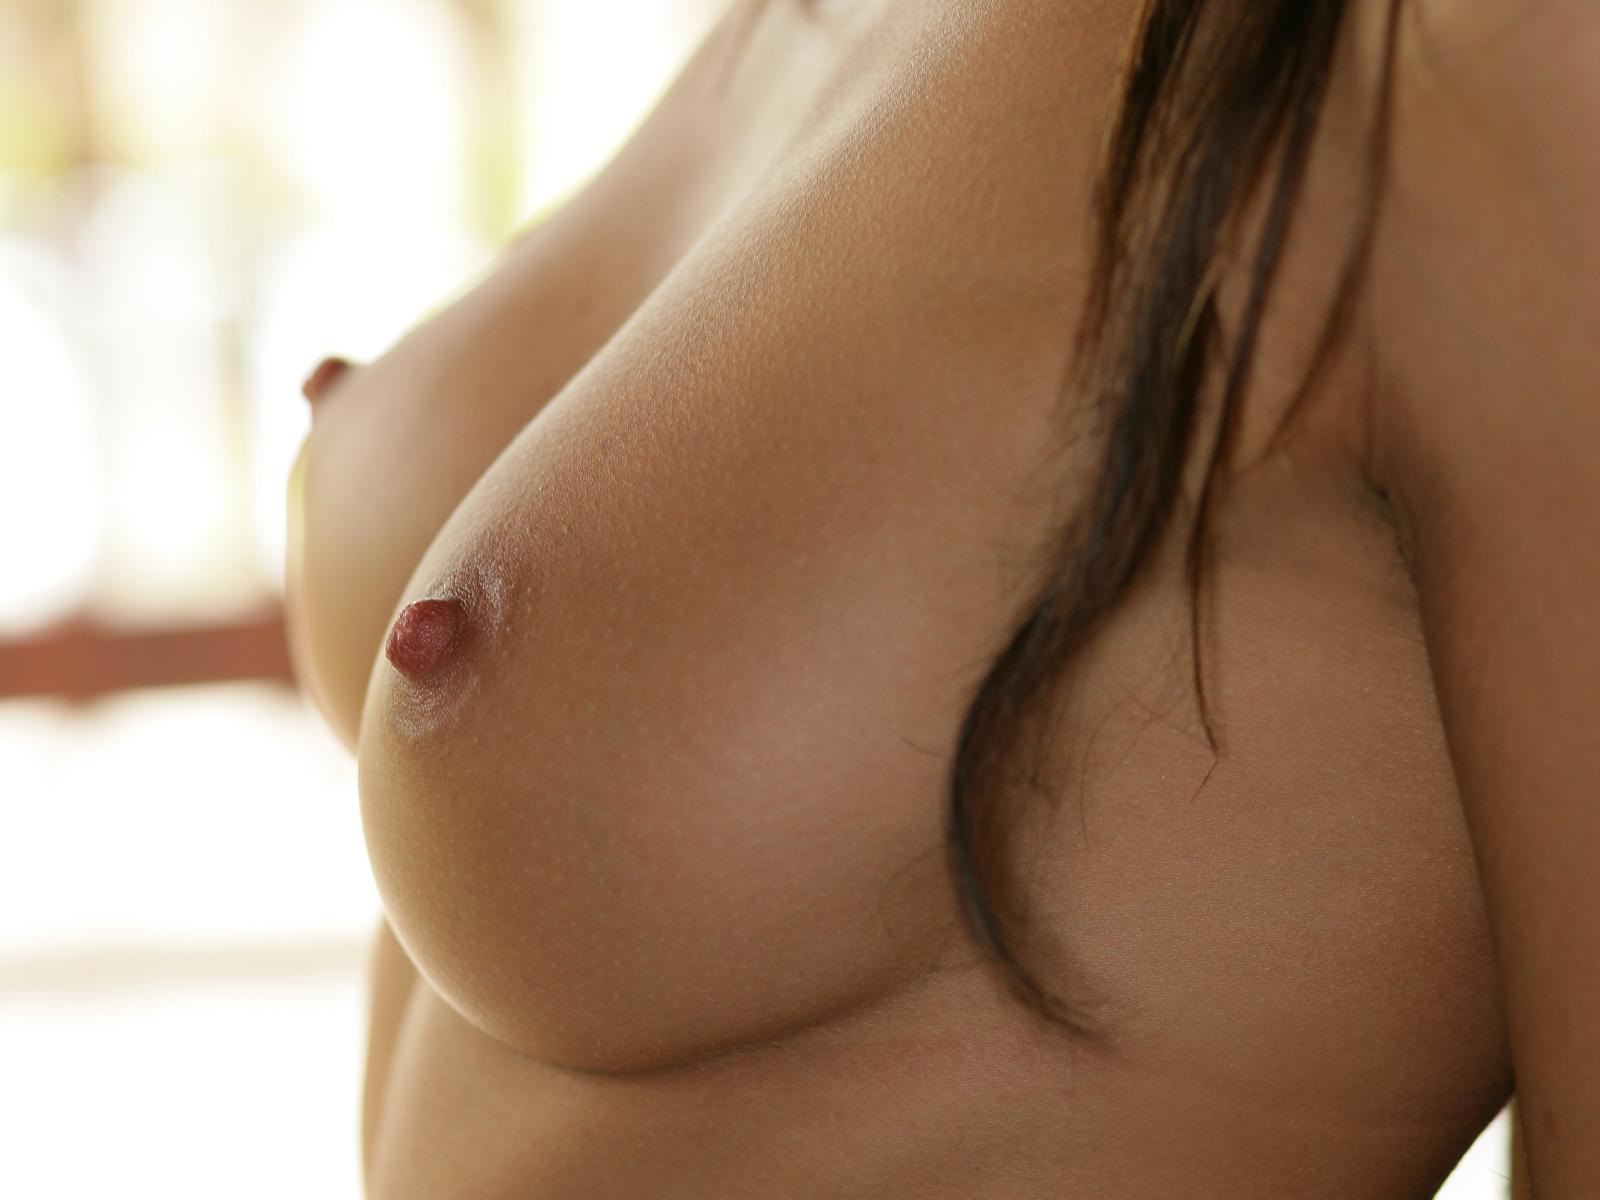 Big tits with veins